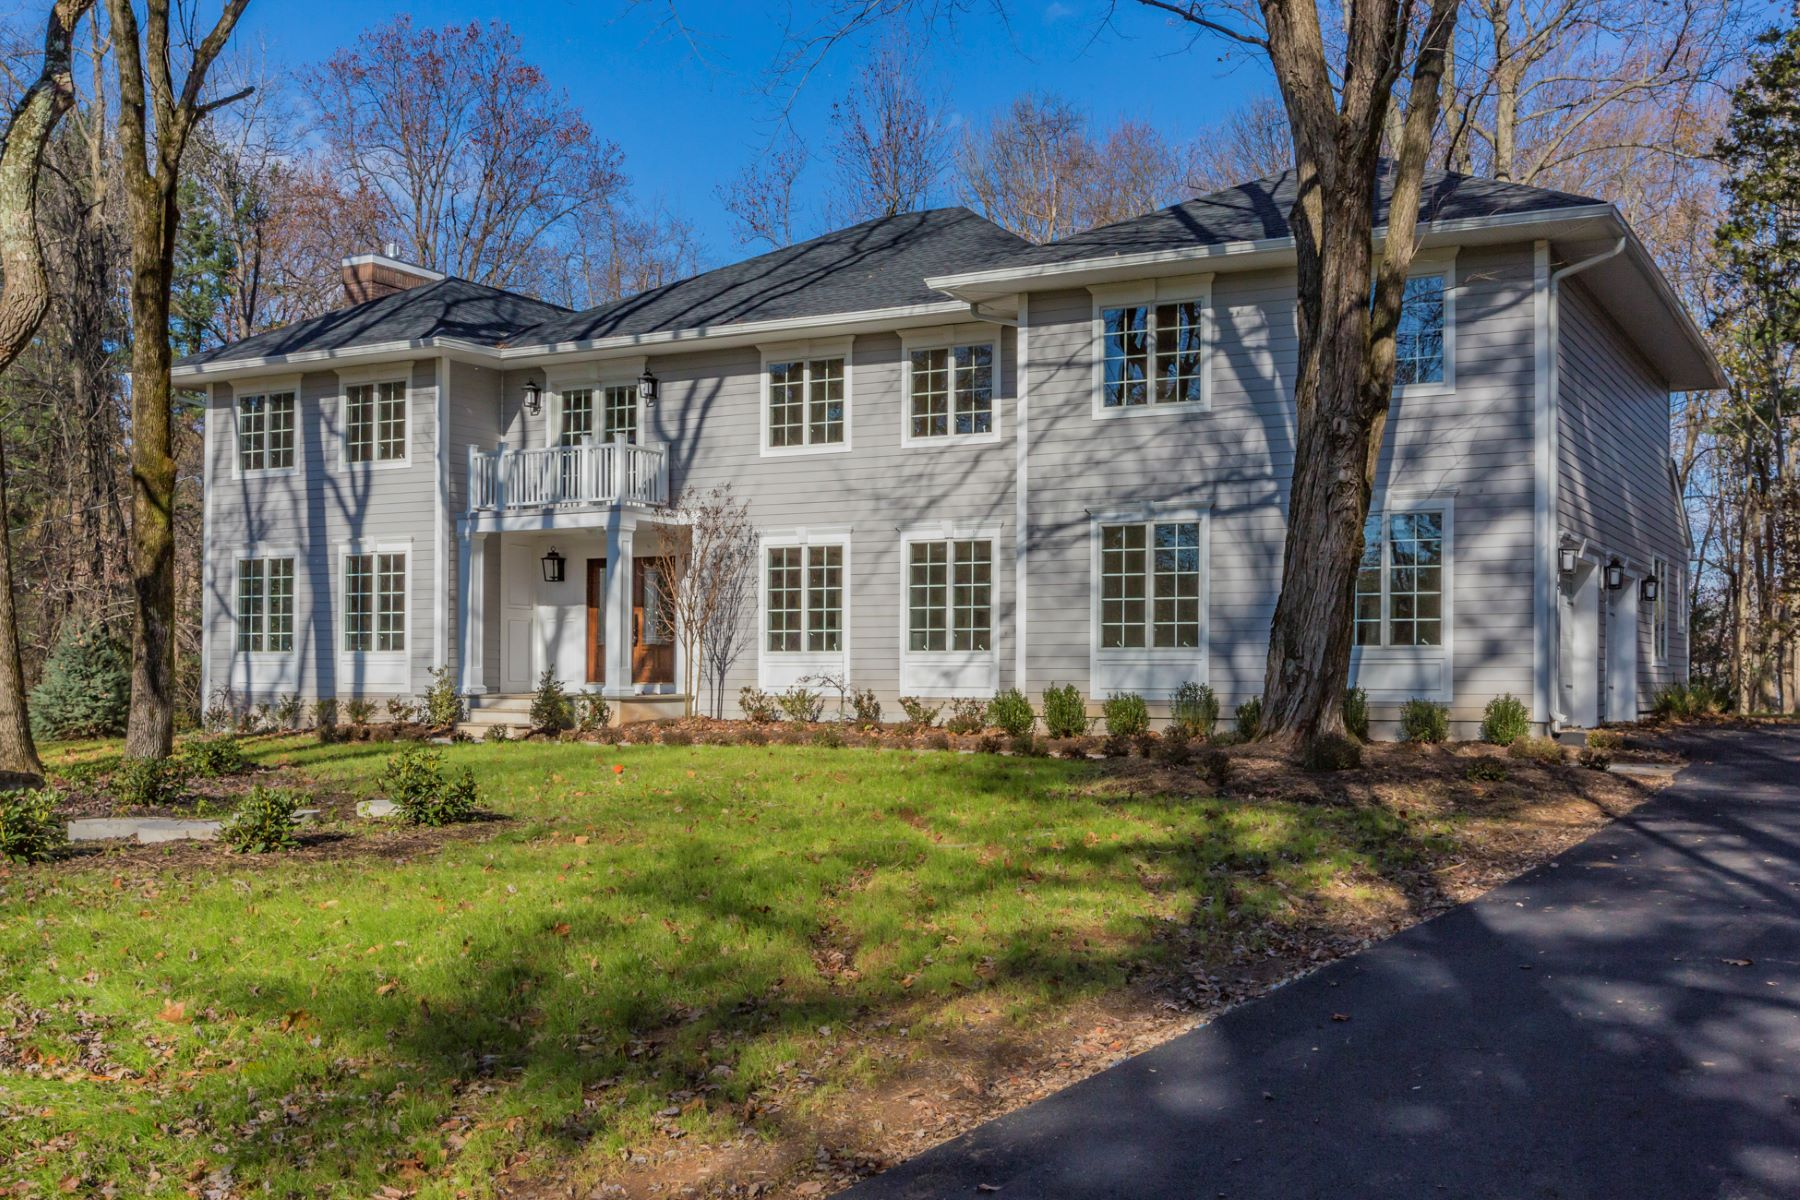 Casa Unifamiliar por un Venta en Dramatically Remodeled To The Highest Standards 1163 Great Road, Princeton, Nueva Jersey 08540 Estados UnidosEn/Alrededor: Princeton